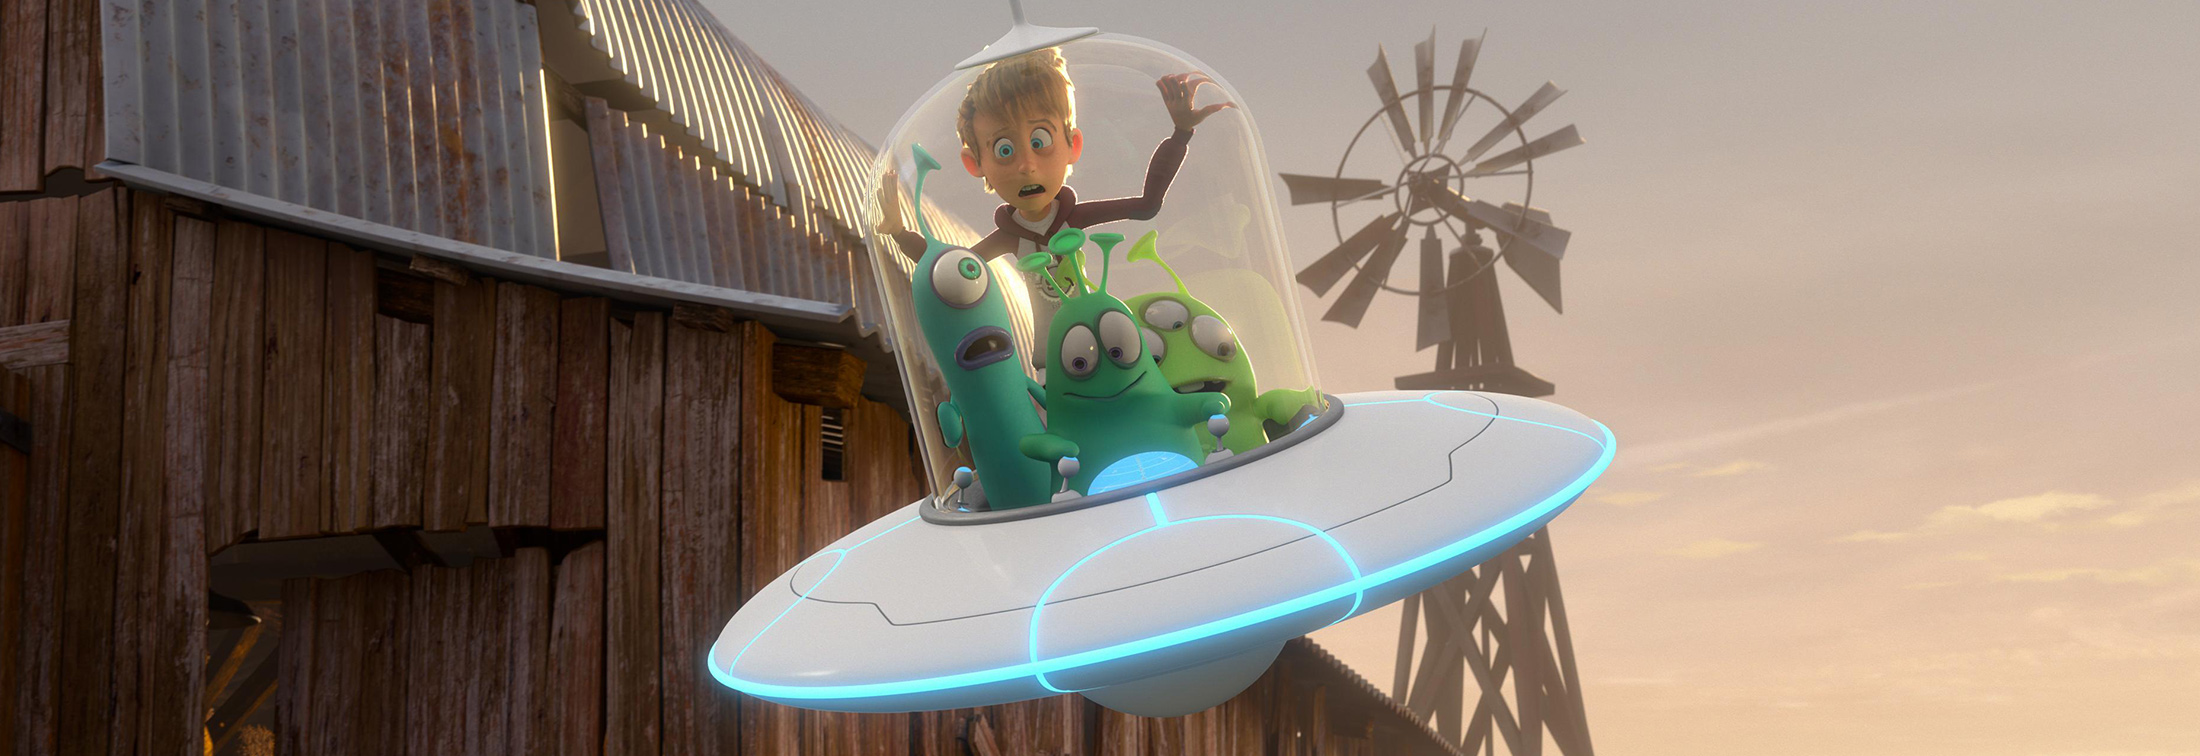 Luis and the Aliens - Take off with this exciting adventure for the whole family